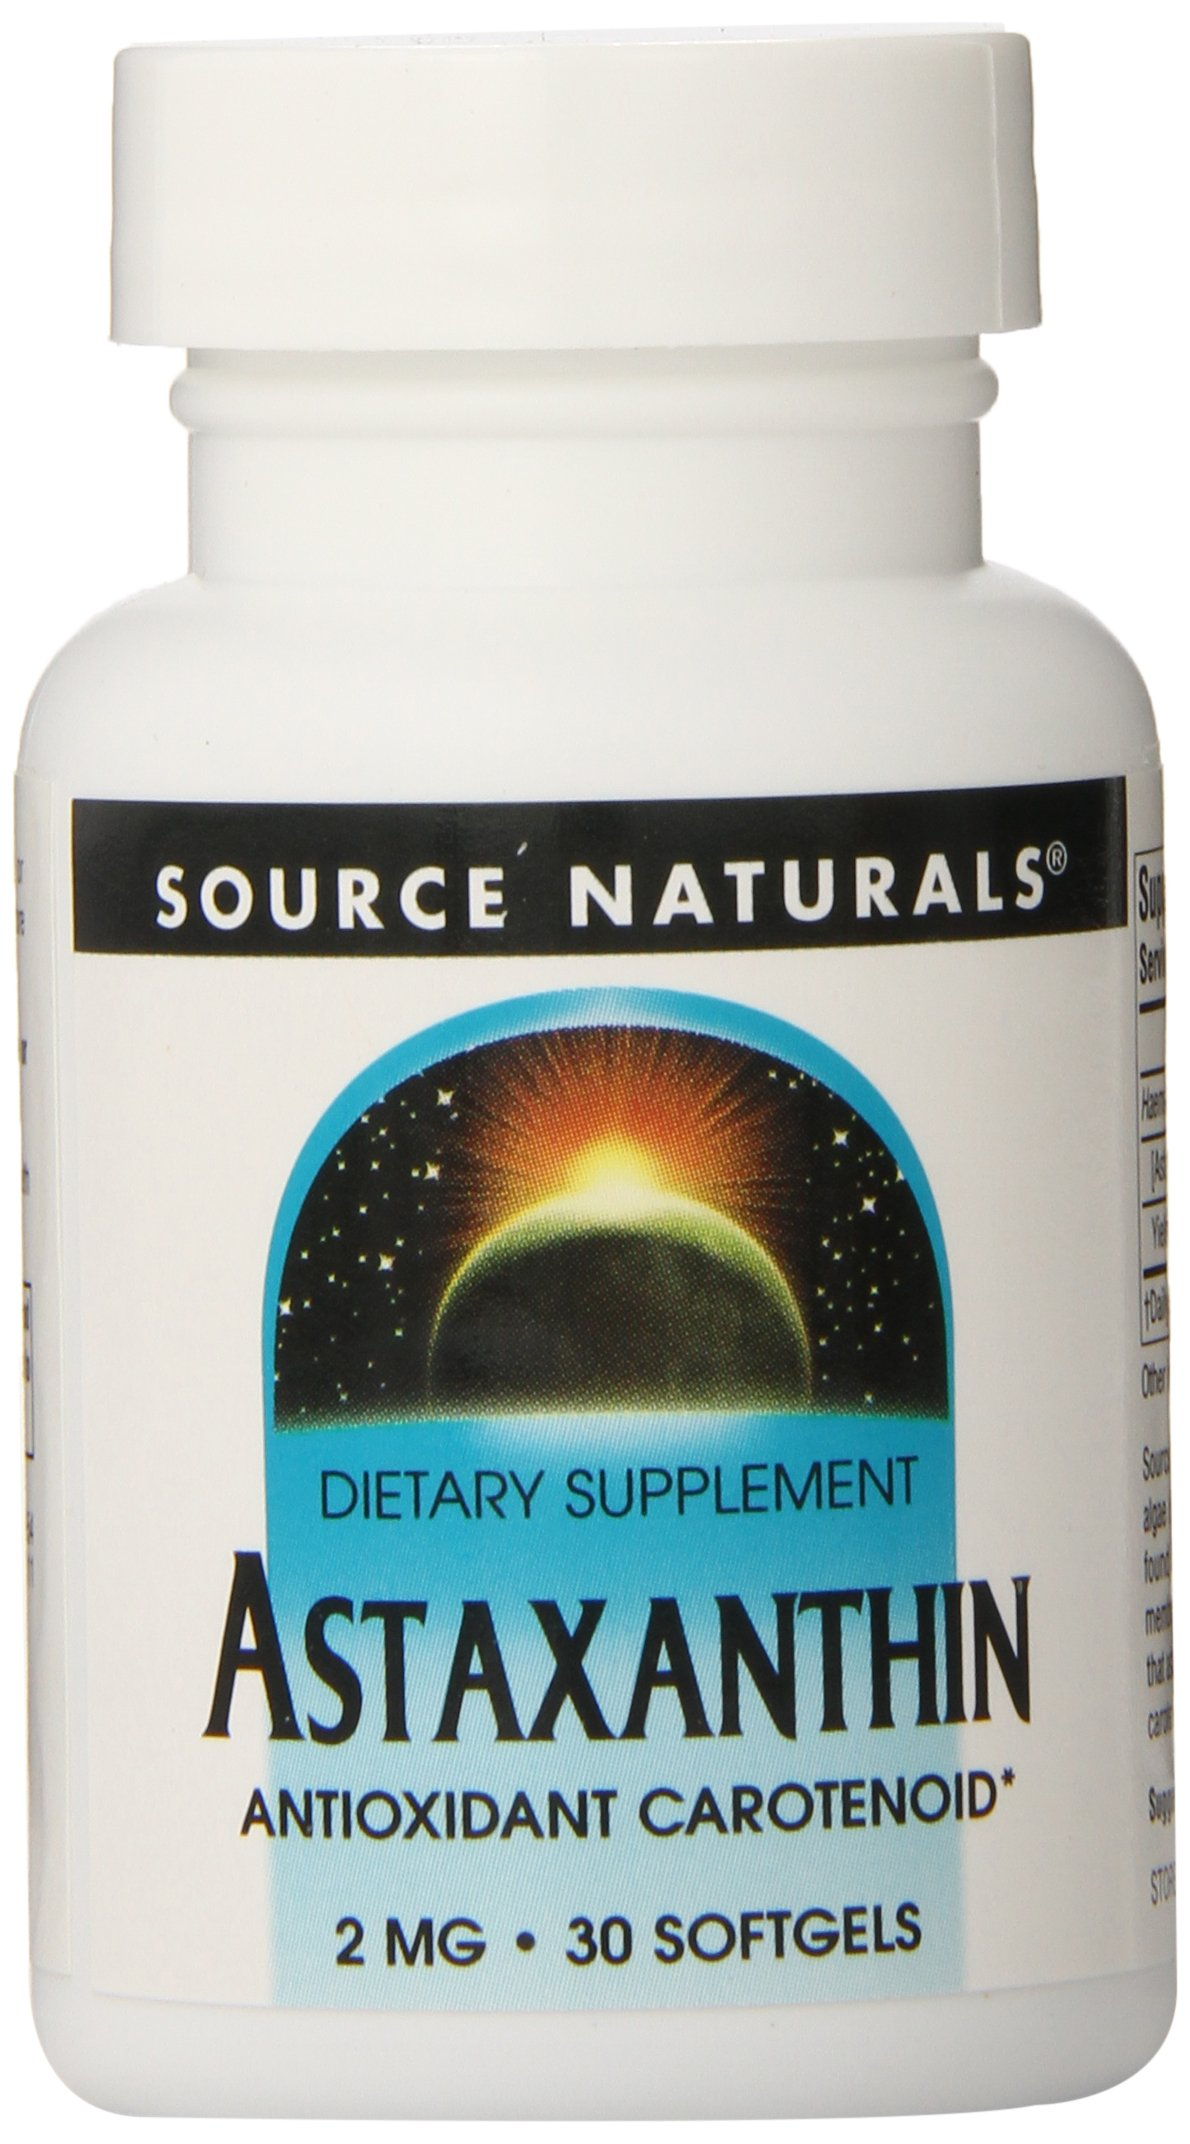 Source Naturals Astaxanthin 2mg, 30 Softgels(Pack of 12)